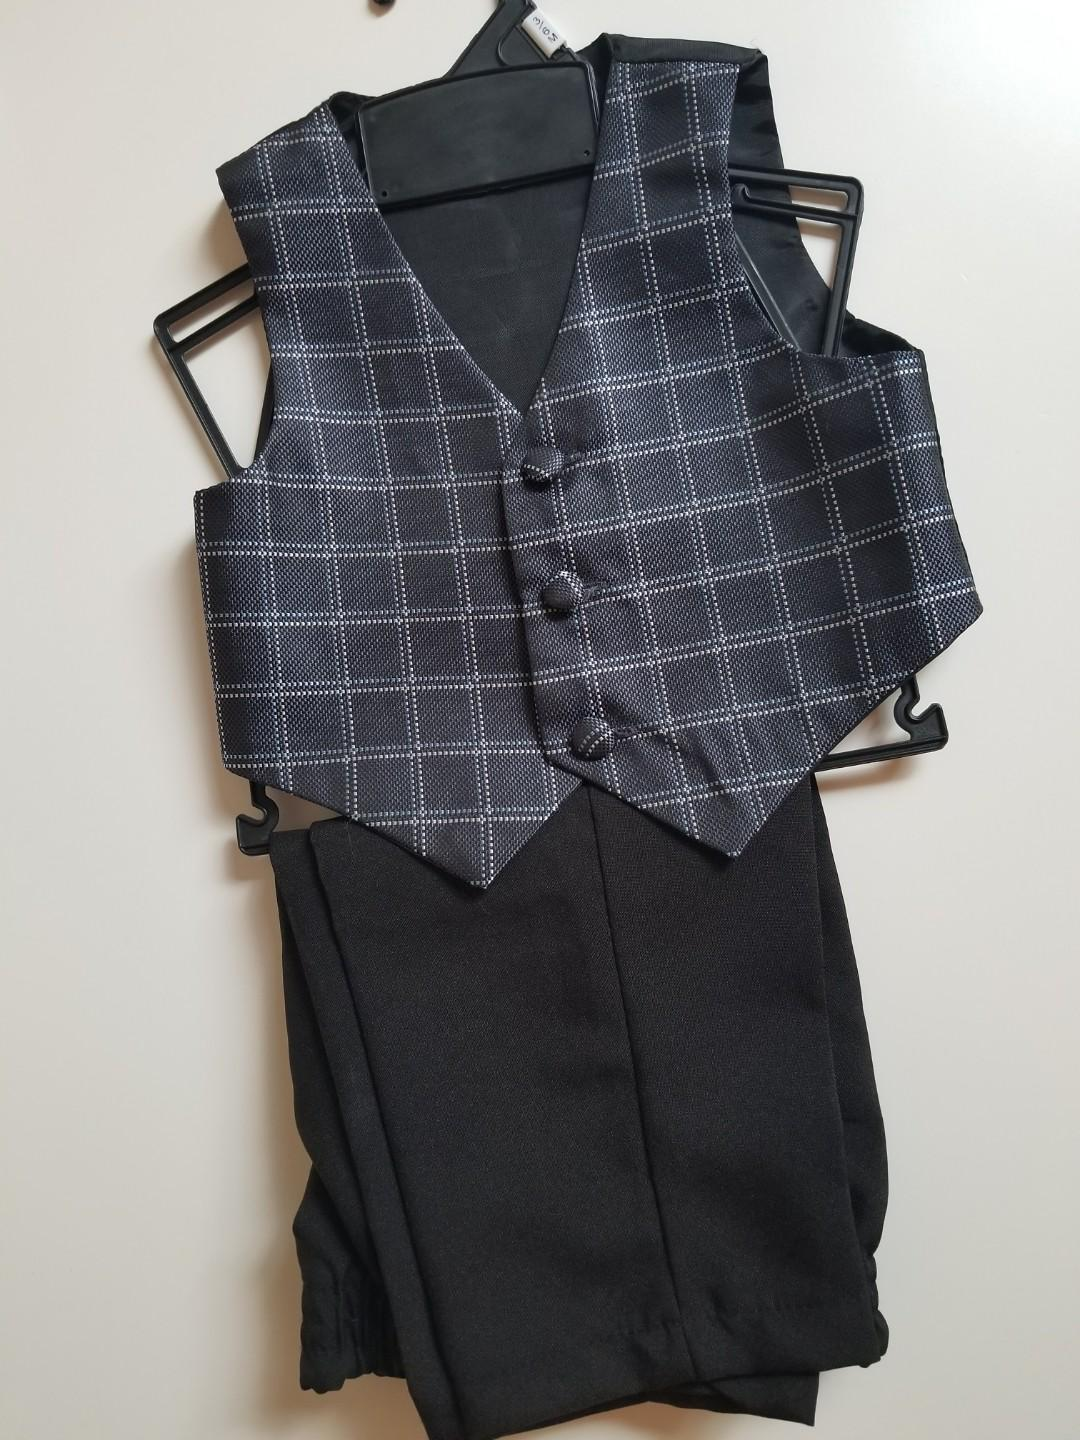 Purchased brand new. No tags. Size 3 to 6 mths. Comes with vest and pants. Extremely dapper looking. Pick up beaches or yorkville.